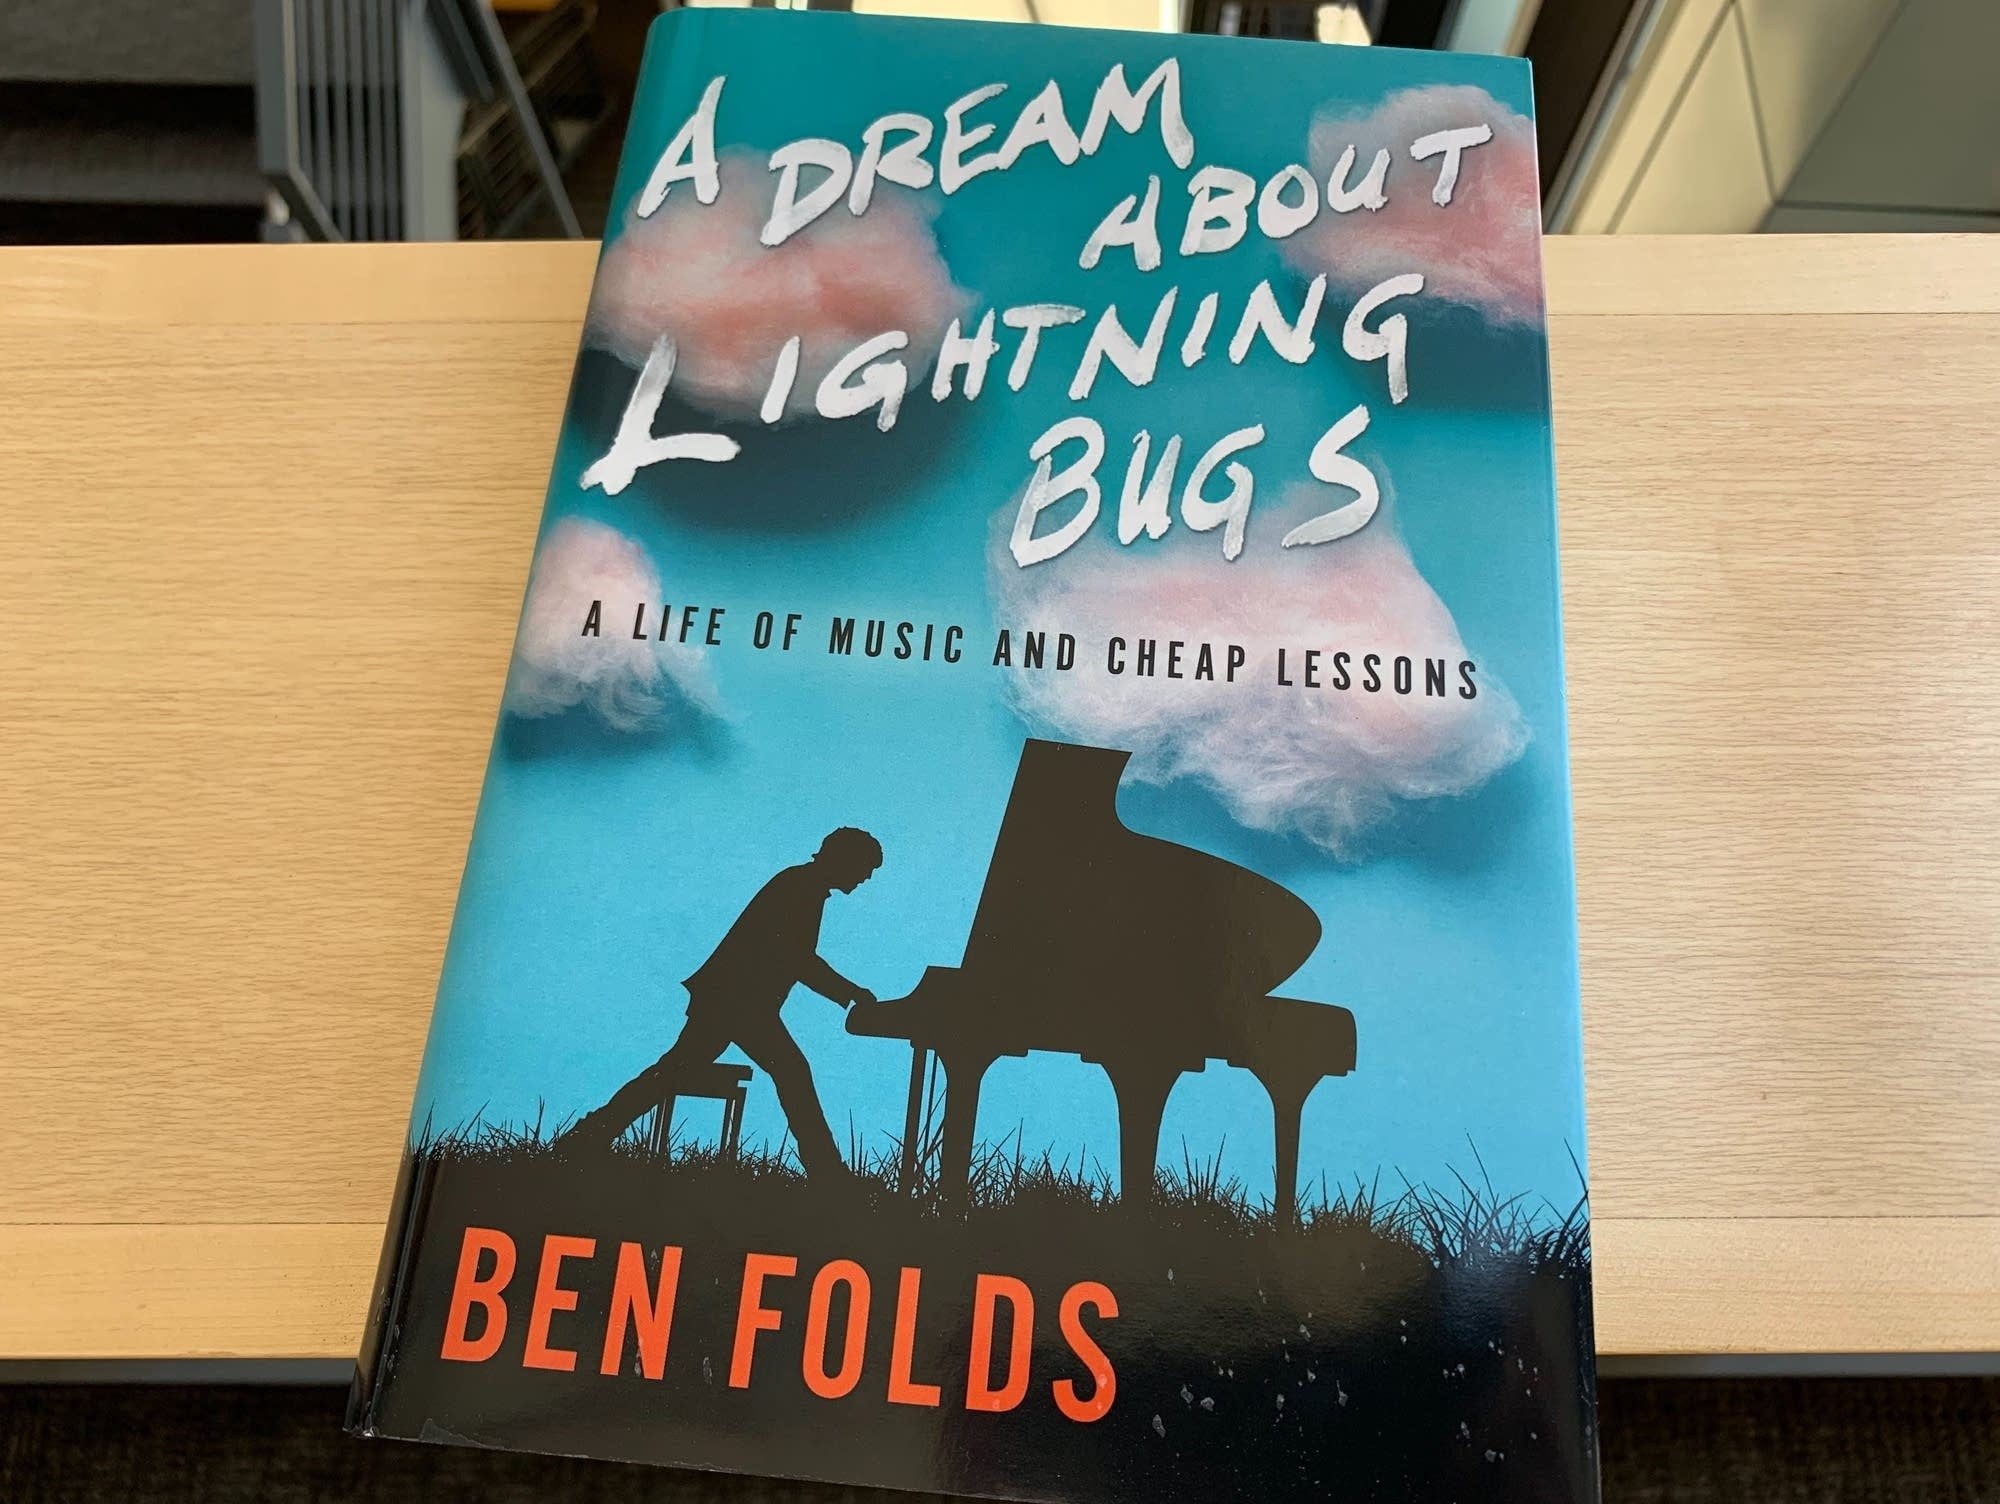 Ben Folds's 'A Dream About Lightning Bugs.'